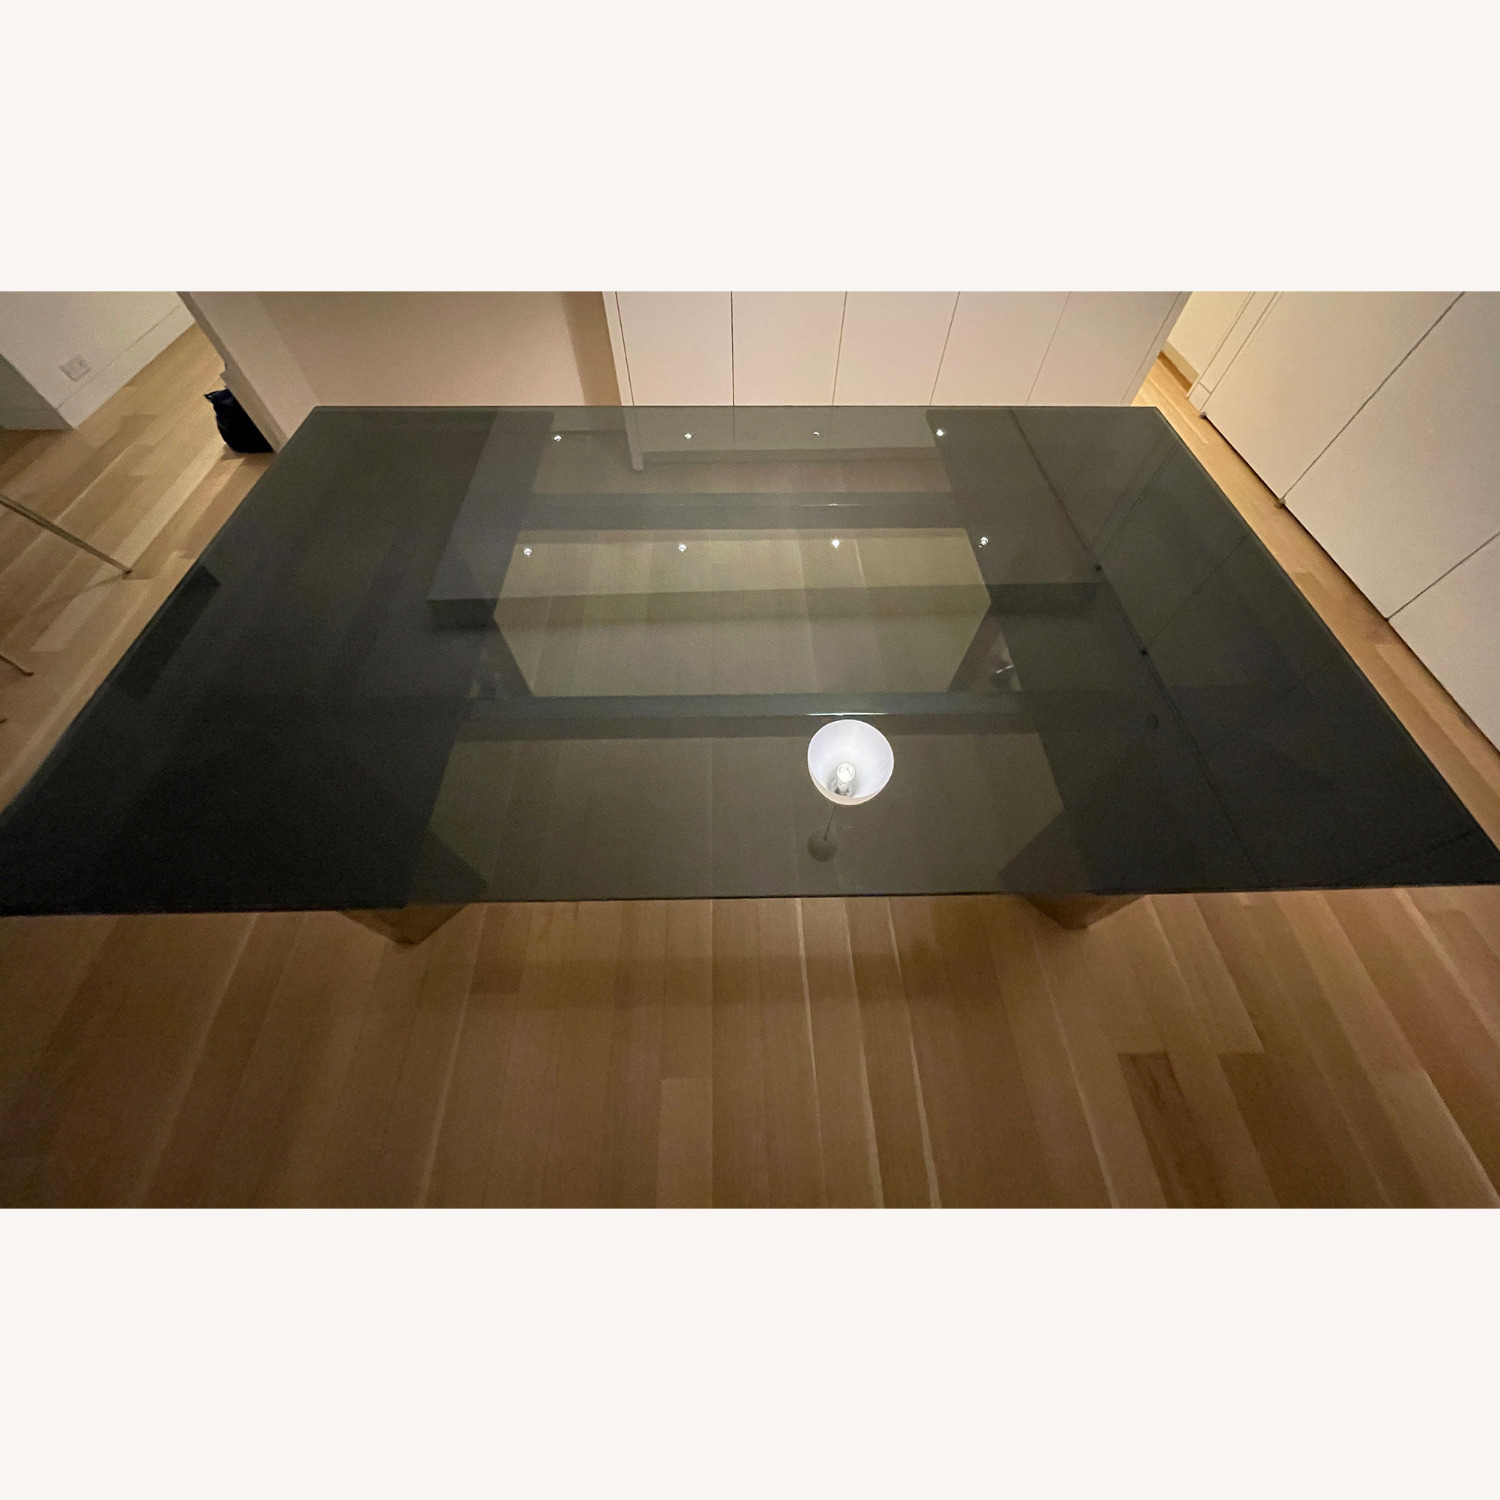 Callagaris Glass Extension Dining Table - image-1